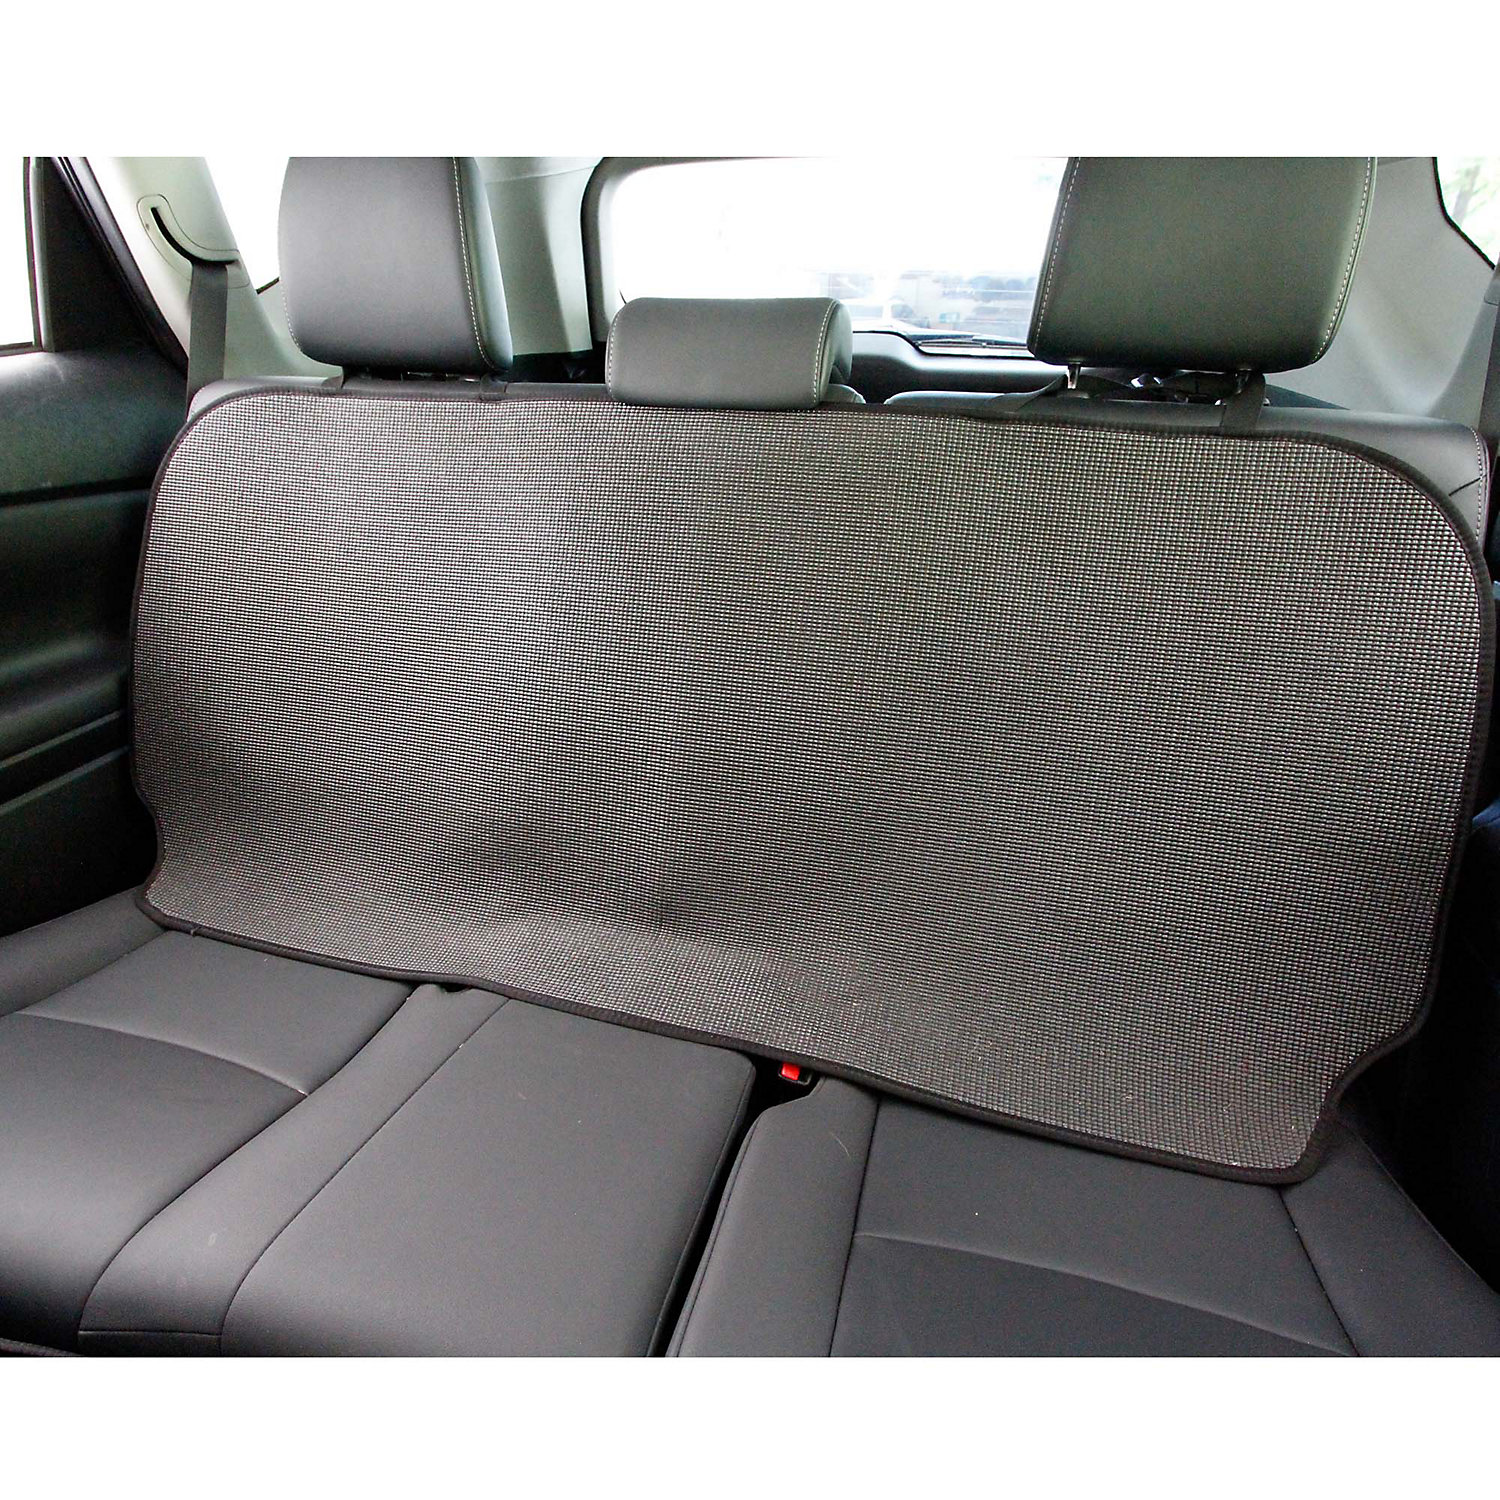 Marvelous photograph of Stayjax Pet Products Bench Seat Top Car Seat Cover One Size Fits All  with #5E6D6D color and 1500x1500 pixels